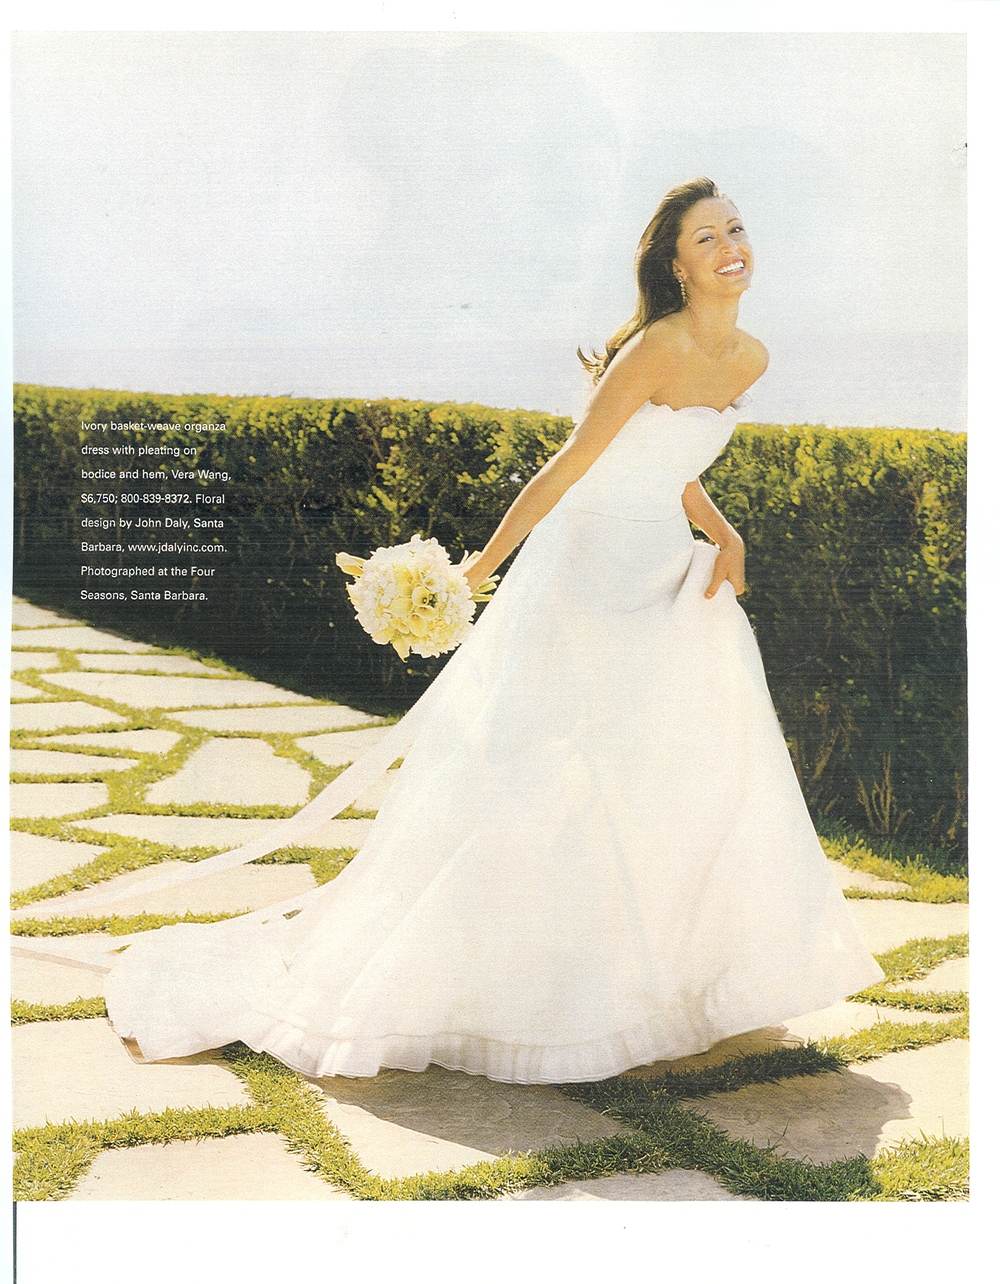 SE_InStyle Weddings_Summer 2002_2.jpg